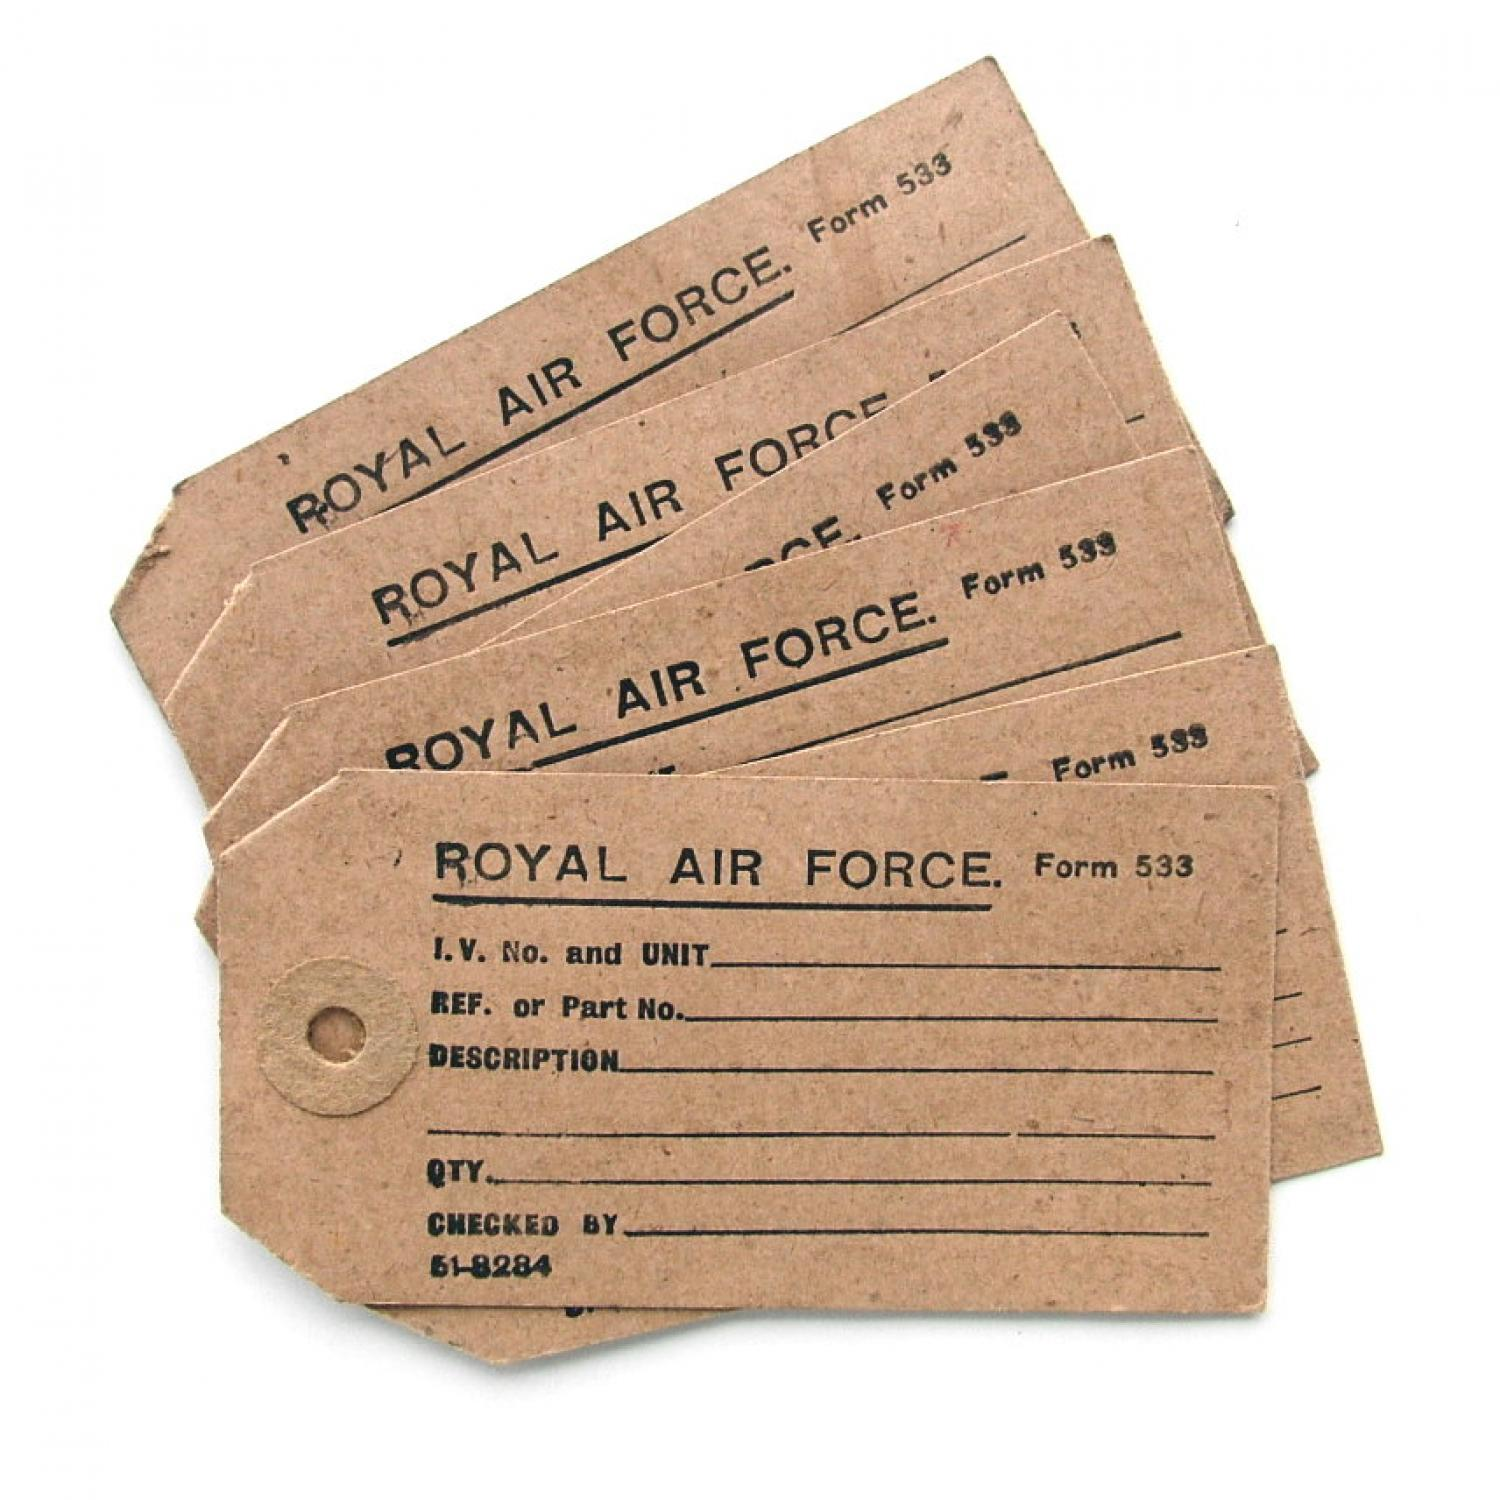 RAF equipment tags